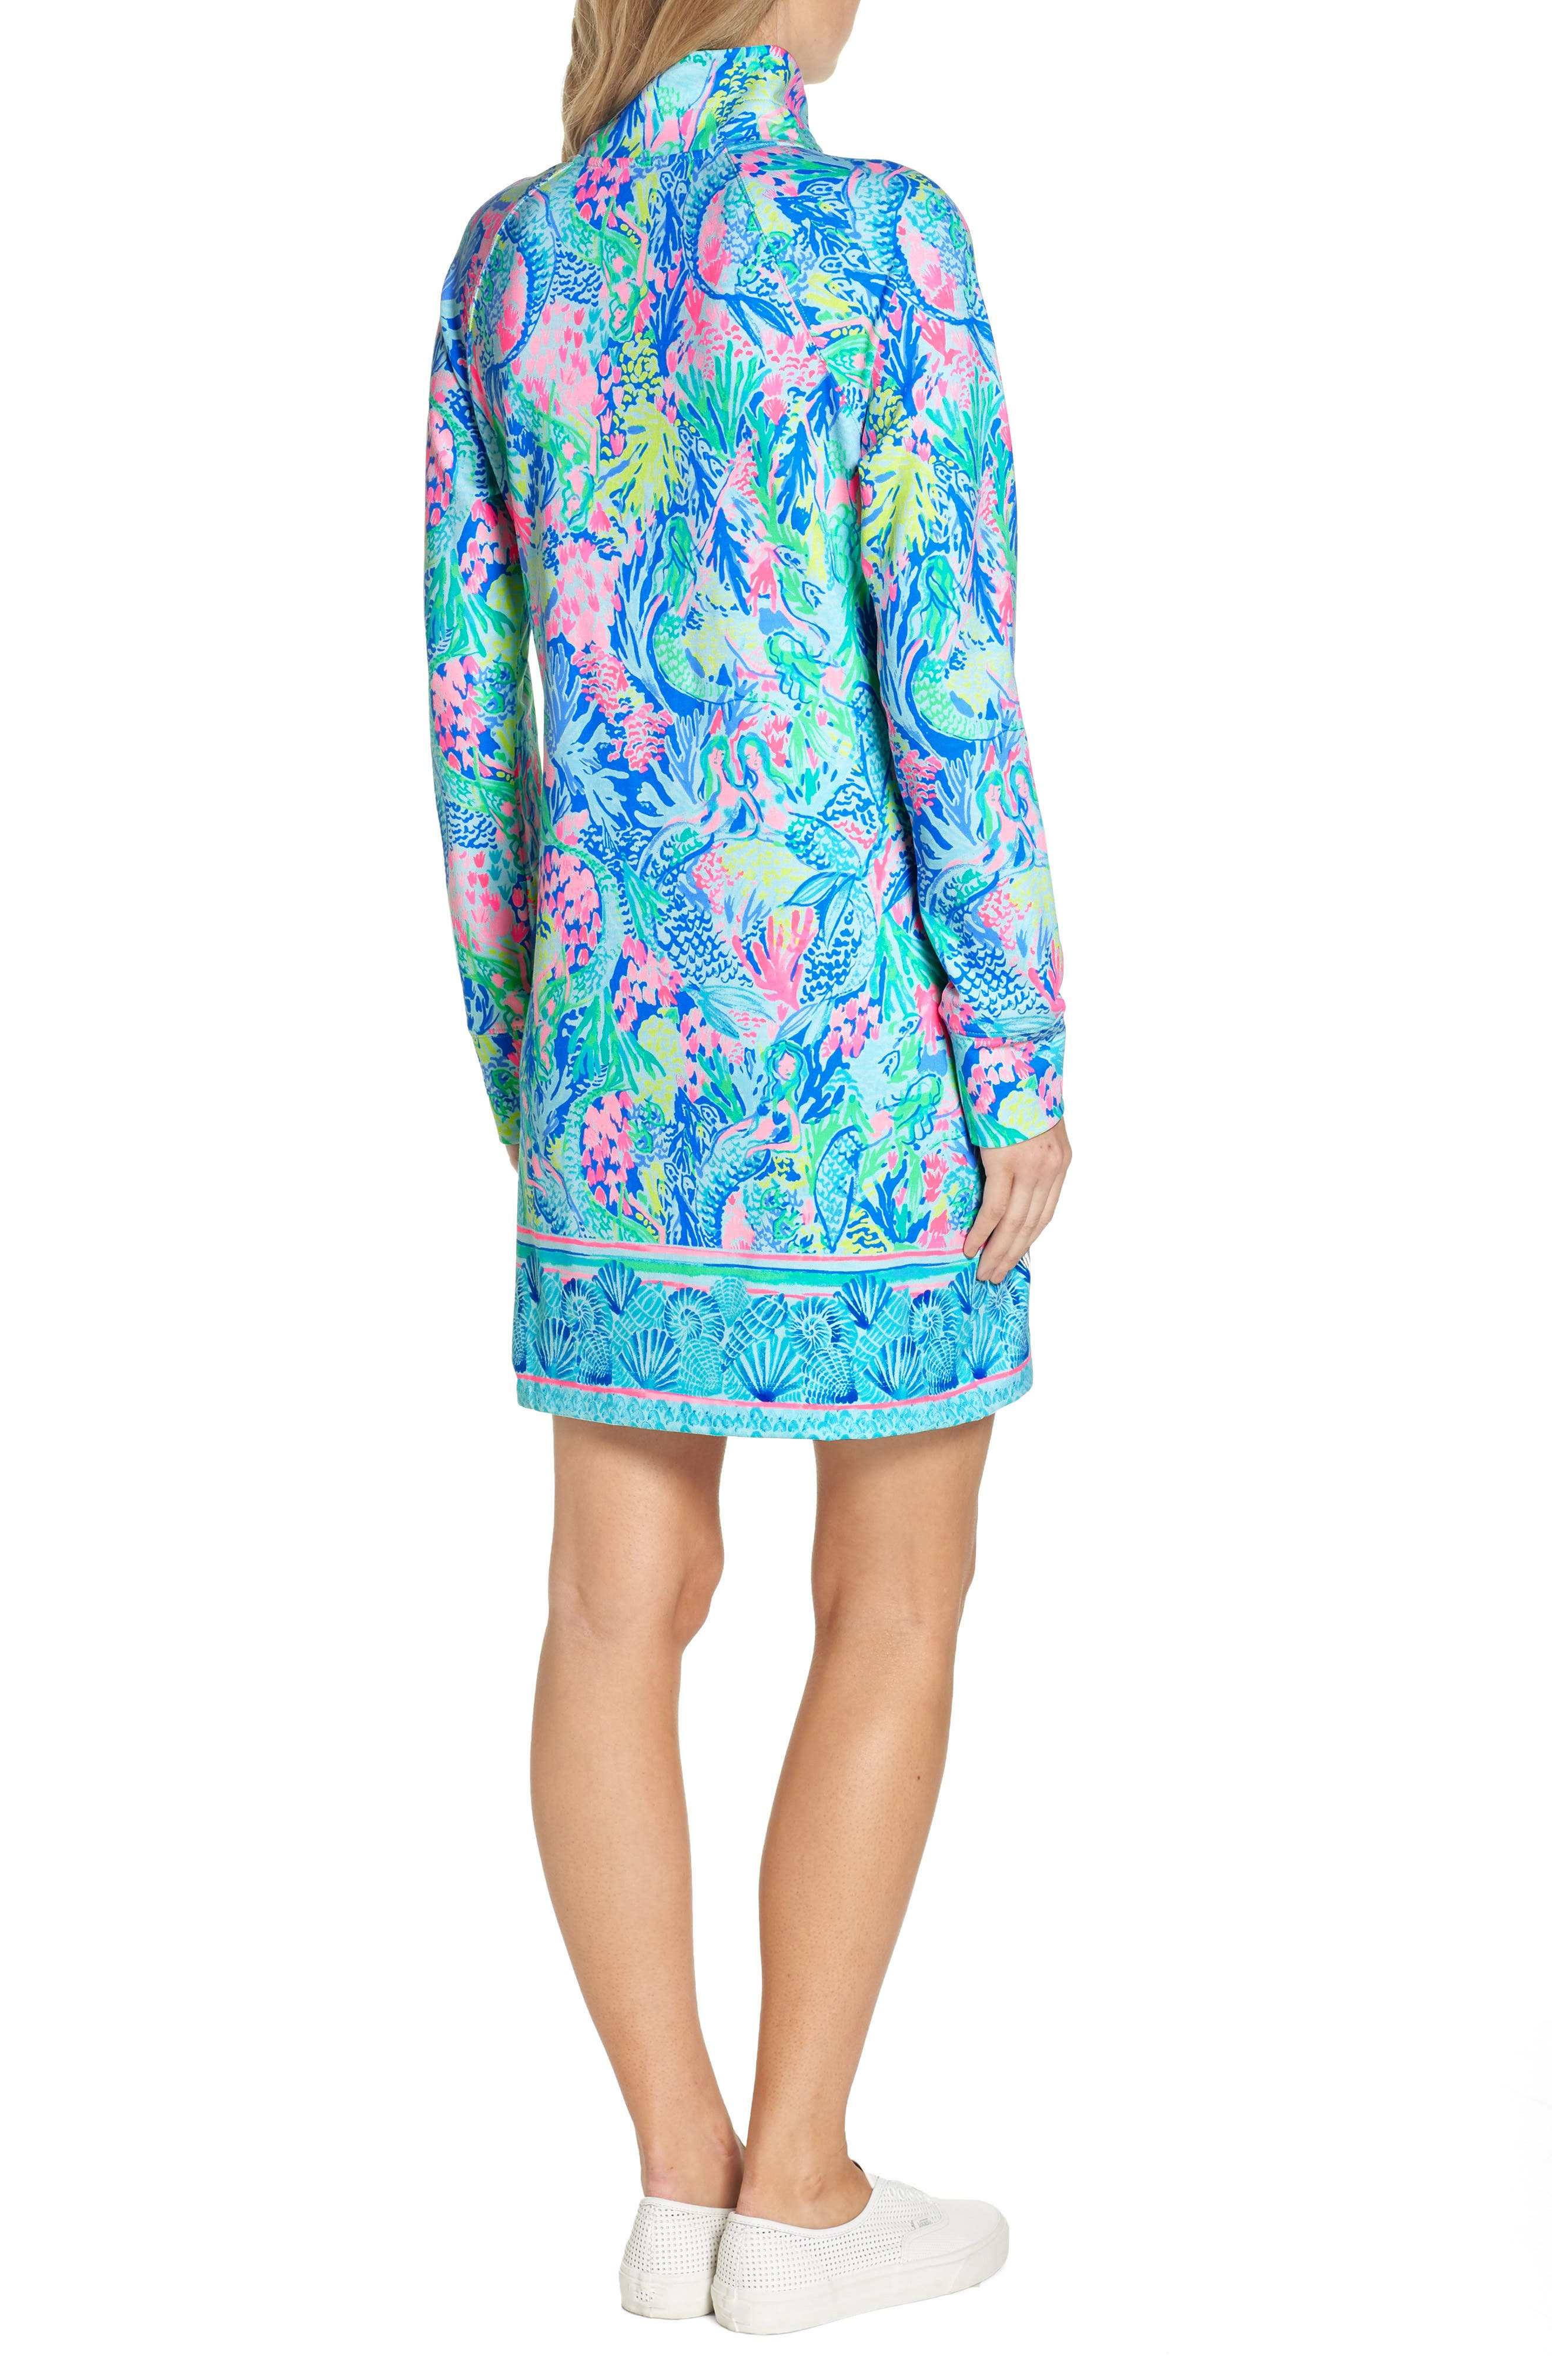 LILLY PULITZER<SUP>®</SUP>,                             Lilly Pulitzer Skipper Shift Dress,                             Alternate thumbnail 2, color,                             449